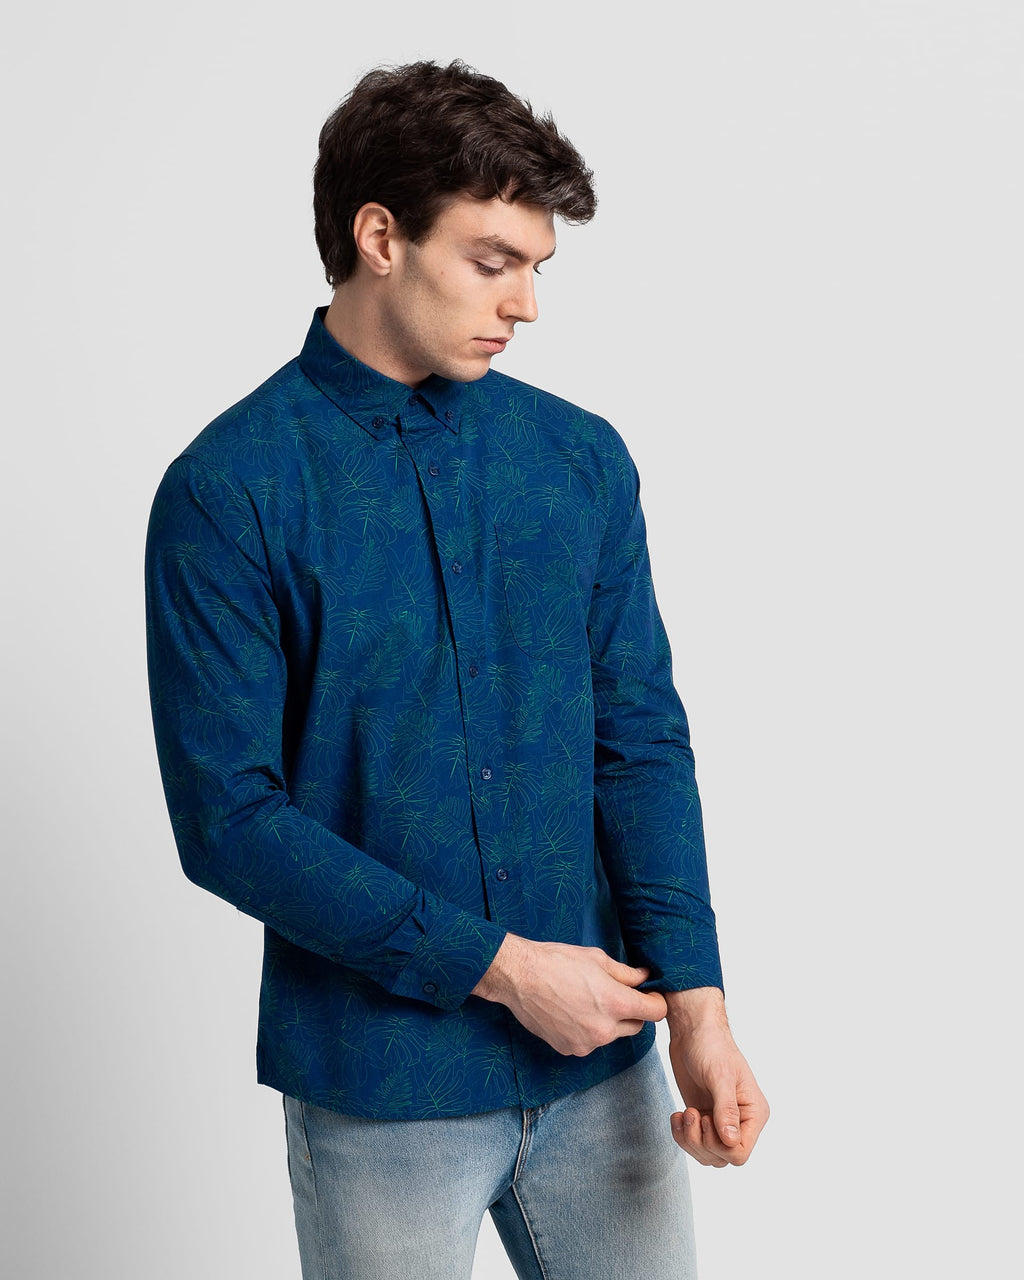 Poplin & Co. - Long Sleeve Shirt - Midnight Monstera - Guys